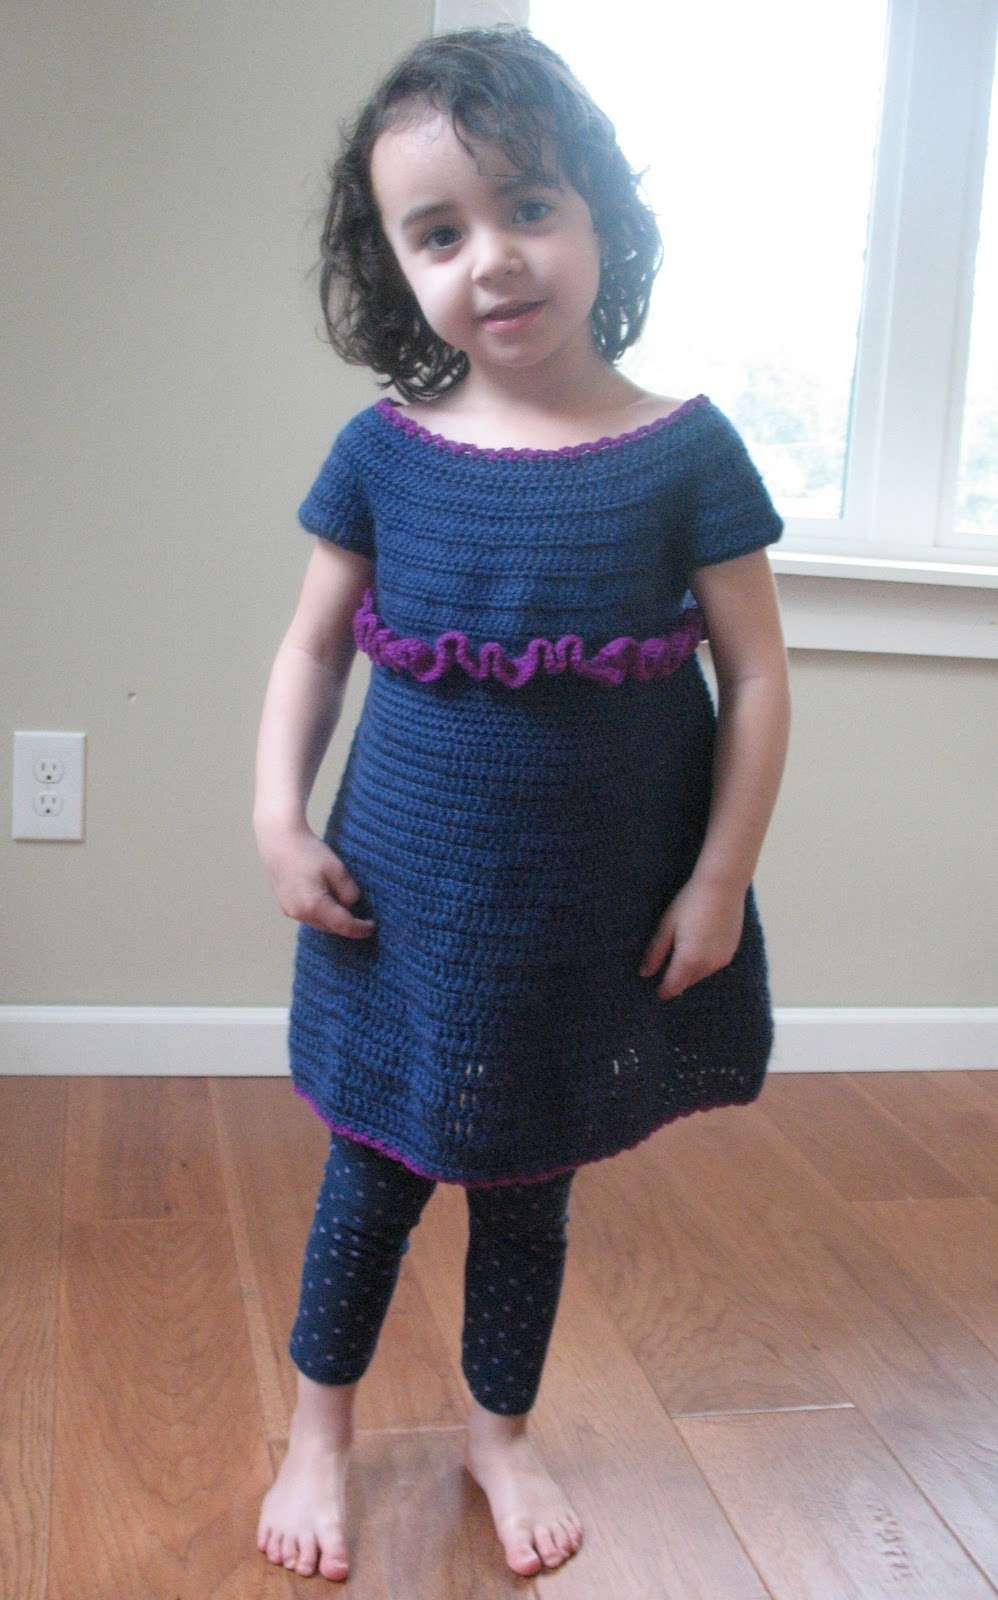 Dress Patterns for Girls Awesome 15 Beautiful Free Crochet Patterns for Girls' Dresses Of Unique 49 Pics Dress Patterns for Girls